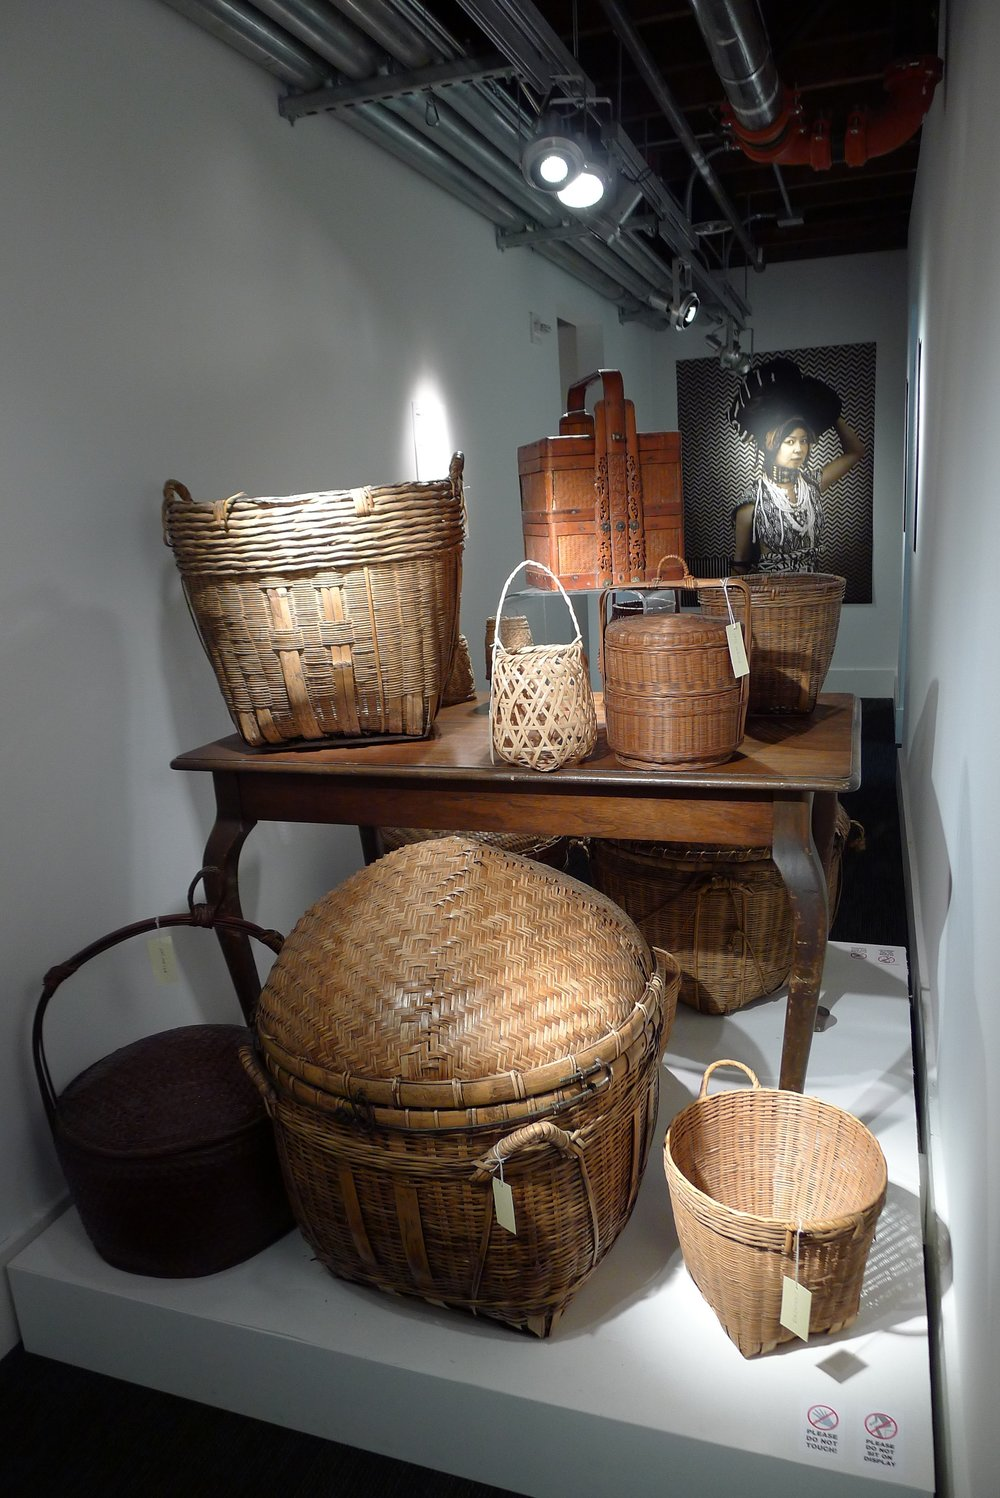 Stephanie Syjuco's  Cargo Cult Series  juxtaposed with baskets from the Wing Luke Collection